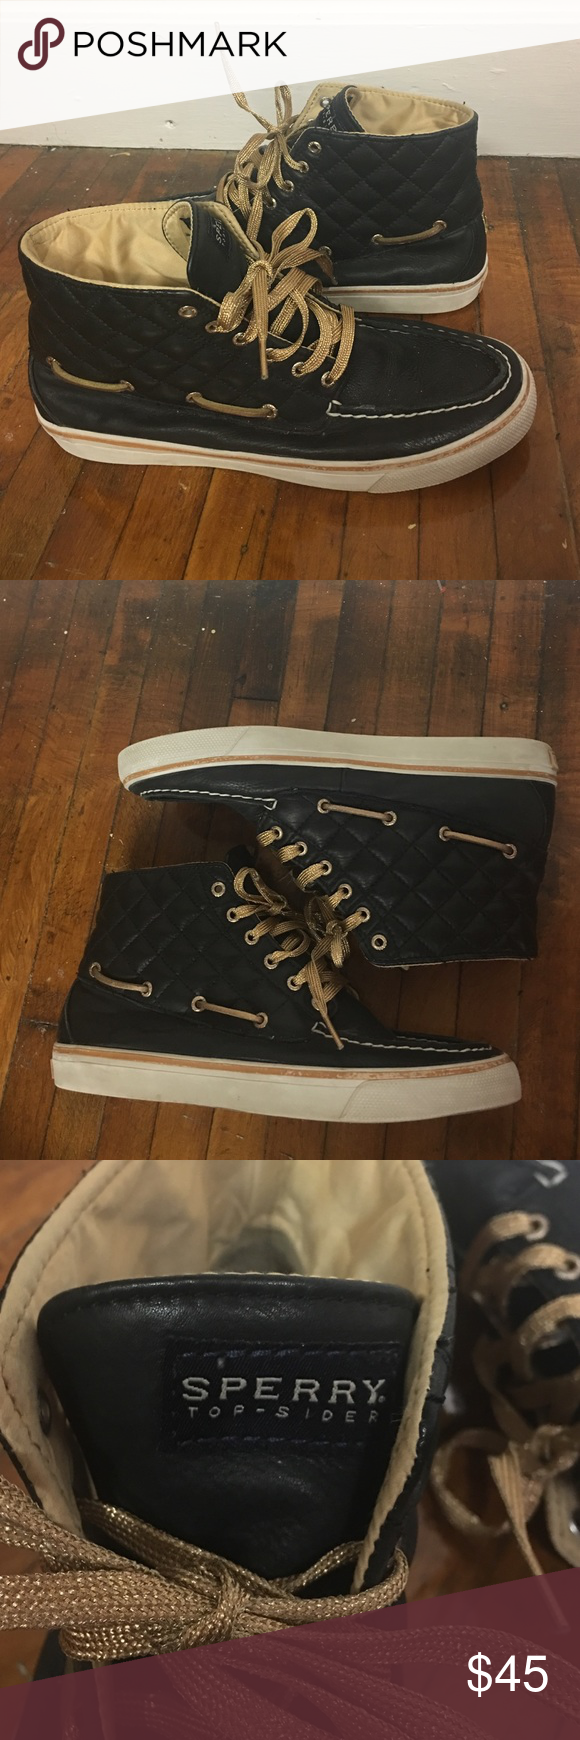 Sperry's High Top Sneakers - black and gold - 9M In great shape! Sperrys high tops with leather upper, gold accents Sperry Top-Sider Shoes Sneakers